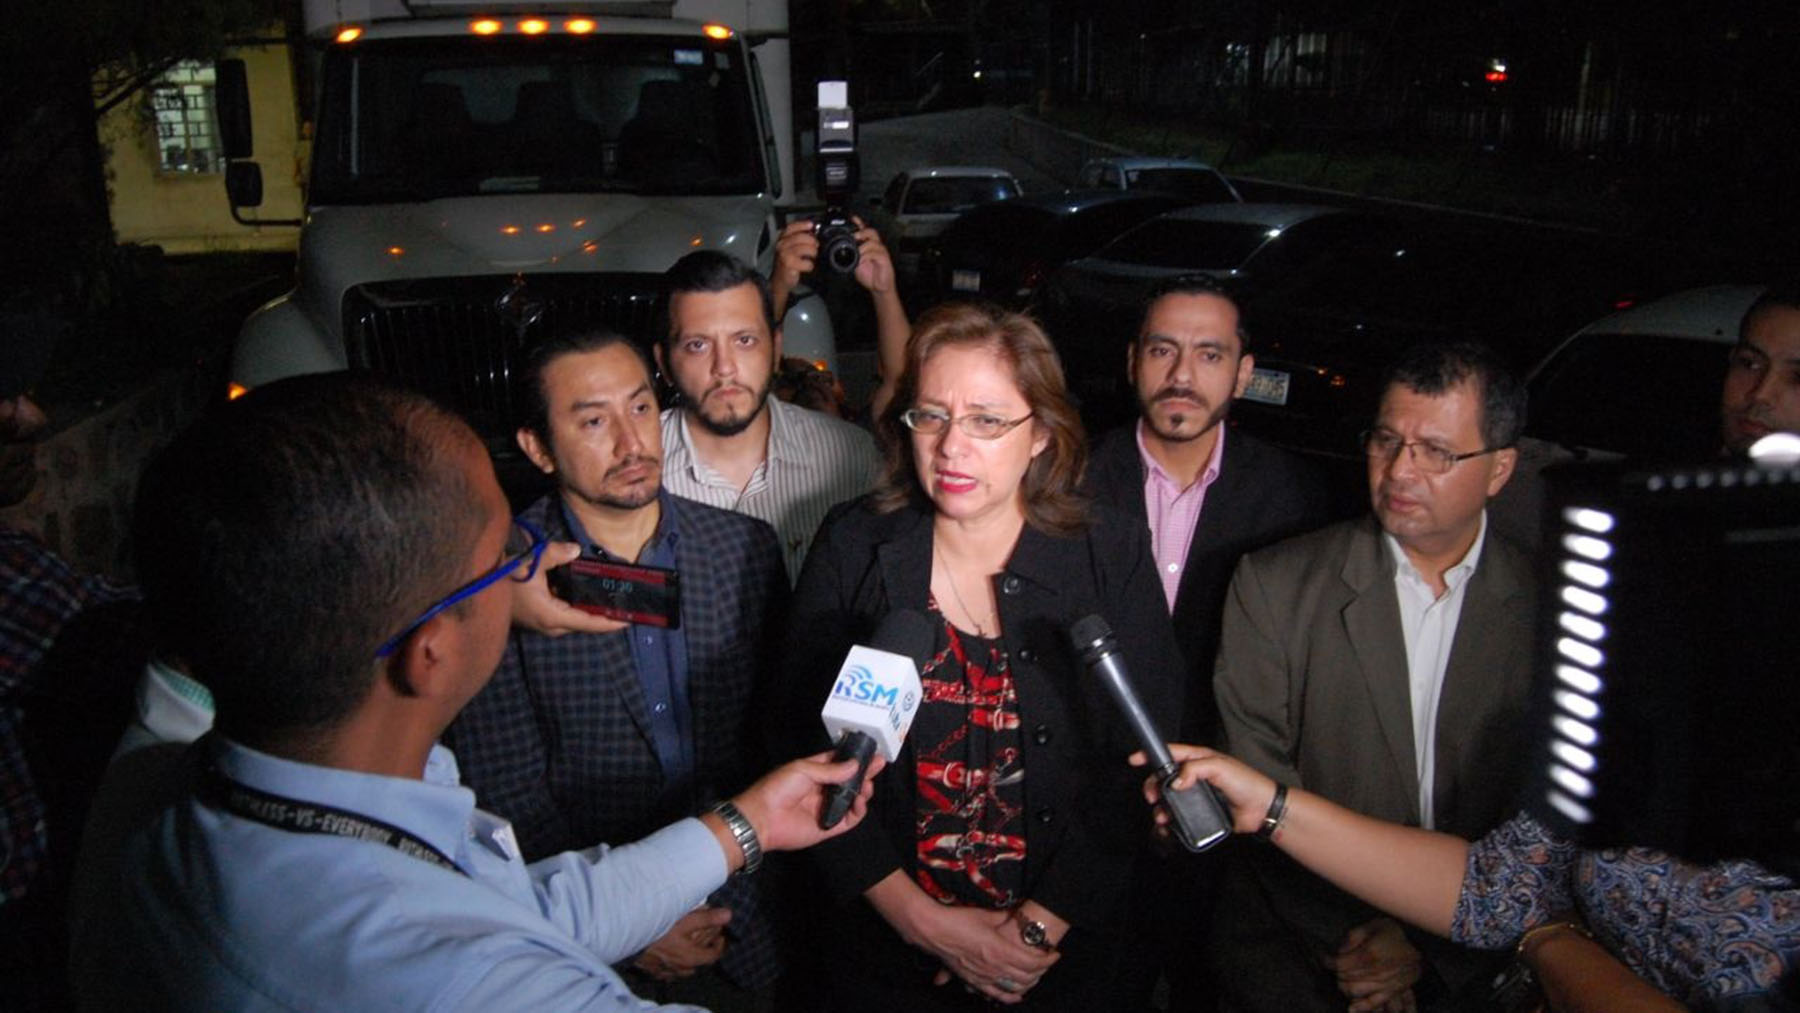 Ana Orellana Bendek, El Salvador's Minister of Health, speaks to the press on July 13 about a newly arrived shipment of Factor VIII, a hemophilia medication, provided by Direct Relief. After the medication was received, the government rushed to get it through Customs. (Photo courtesy of the Salvadoran President's Press Secretary)